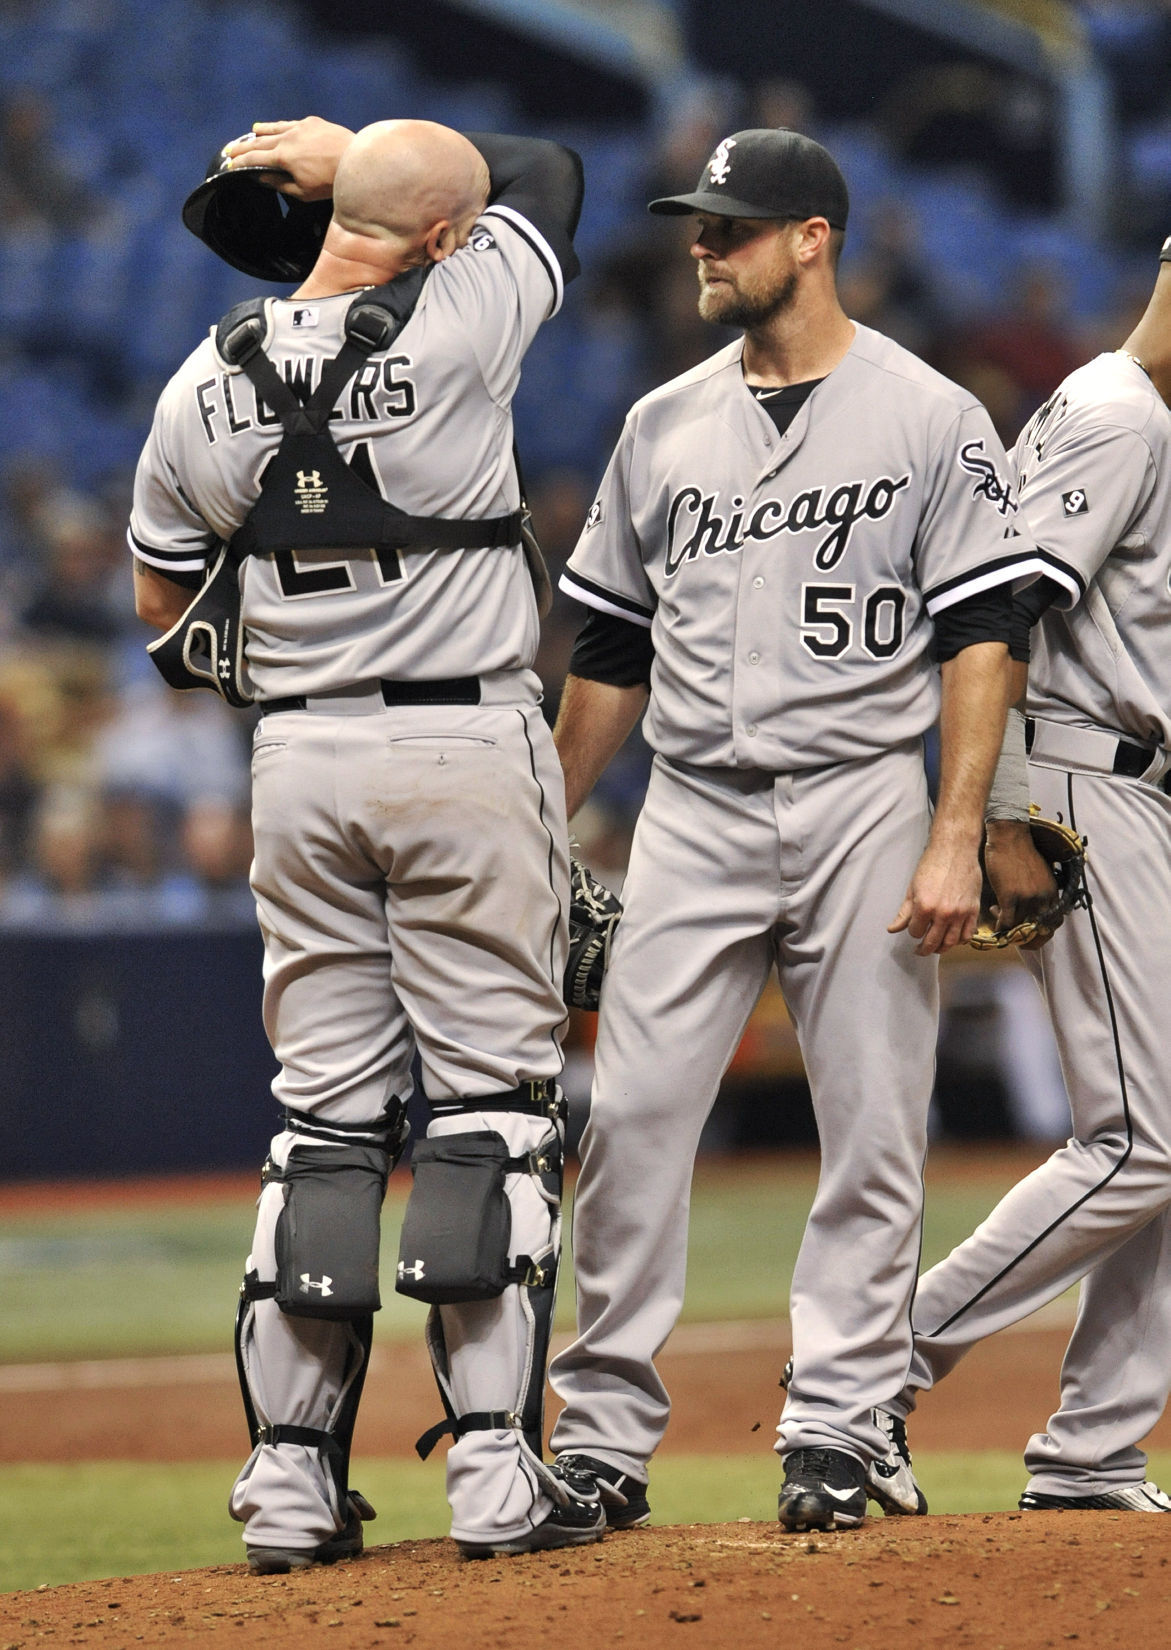 Gallery The Chicago White Sox Play The Tampa Bay Rays June 12